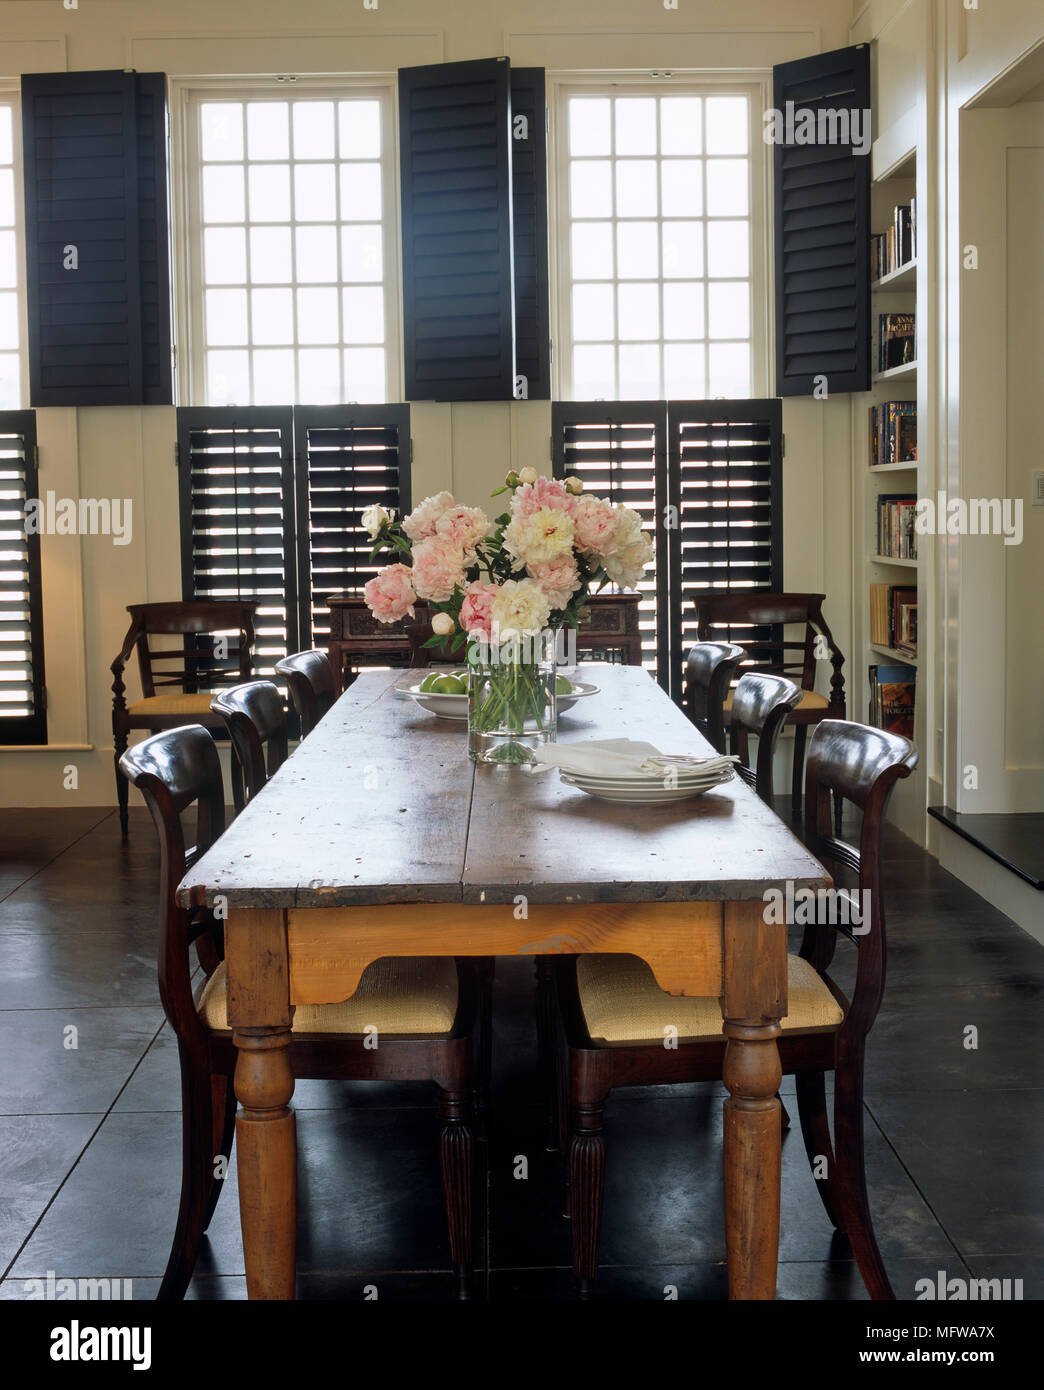 Picture of: Dining Room With Long Wooden Table And Chairs In Front Of Window With Shutters Stock Photo Alamy